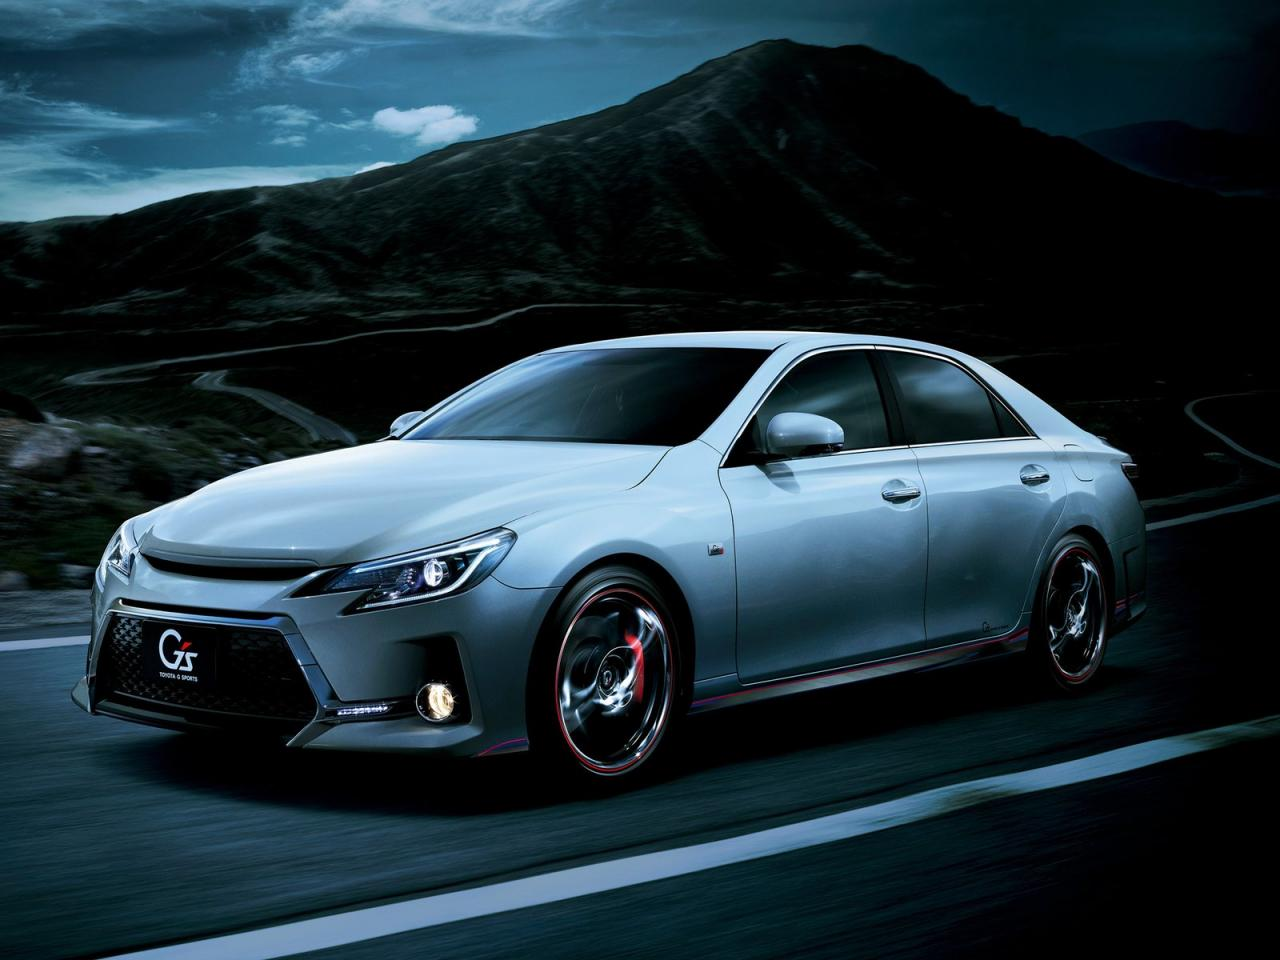 2013 Toyota Mark X Facelift Japan Only Autoevolution